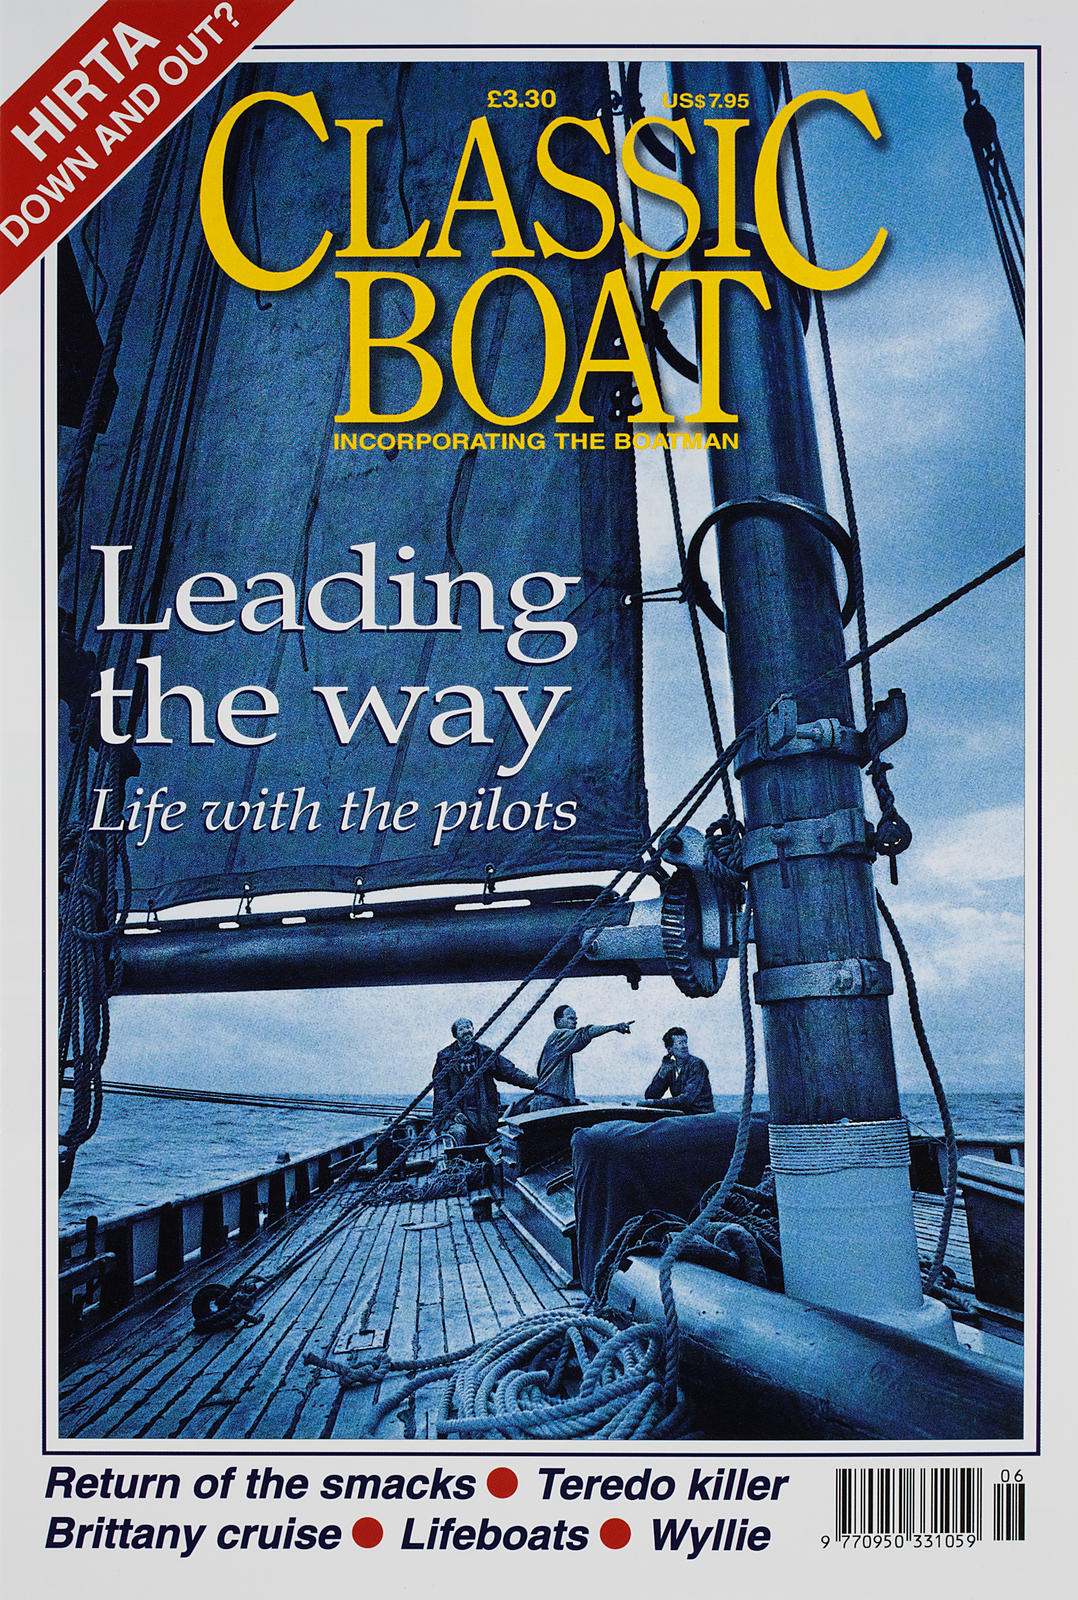 Aboard the 'OLGA', a 1910 pilot cutter in the Bristol Channel.